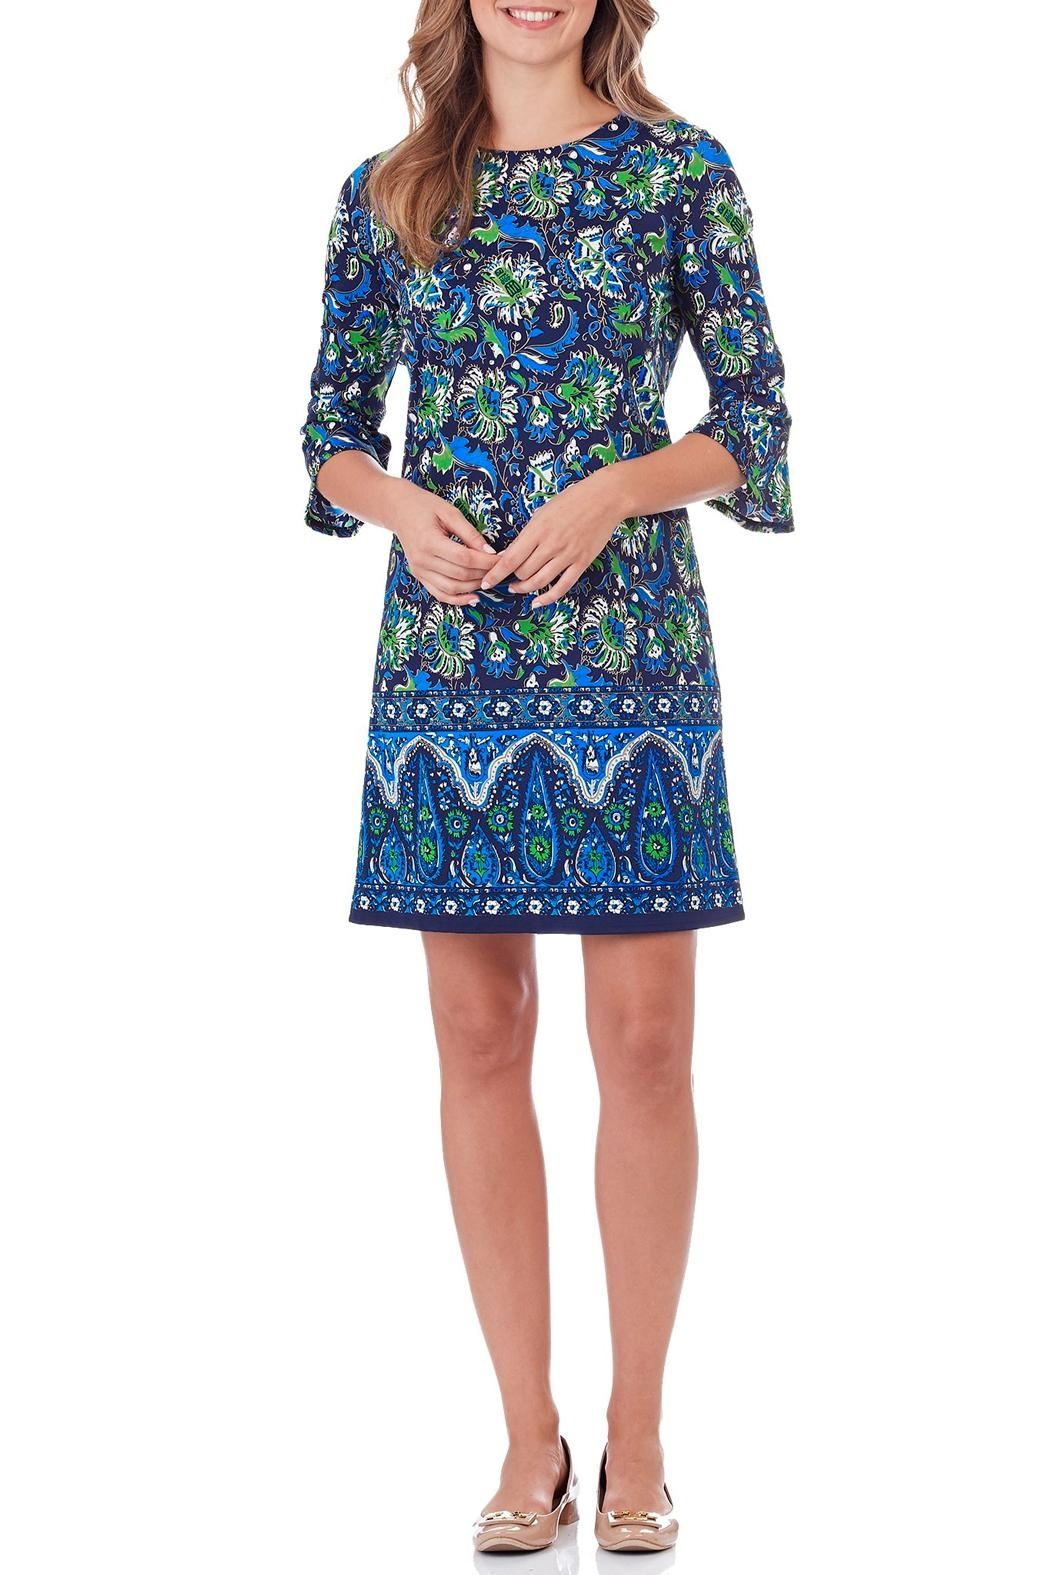 Jude Connally Margot Shift Dress - Main Image